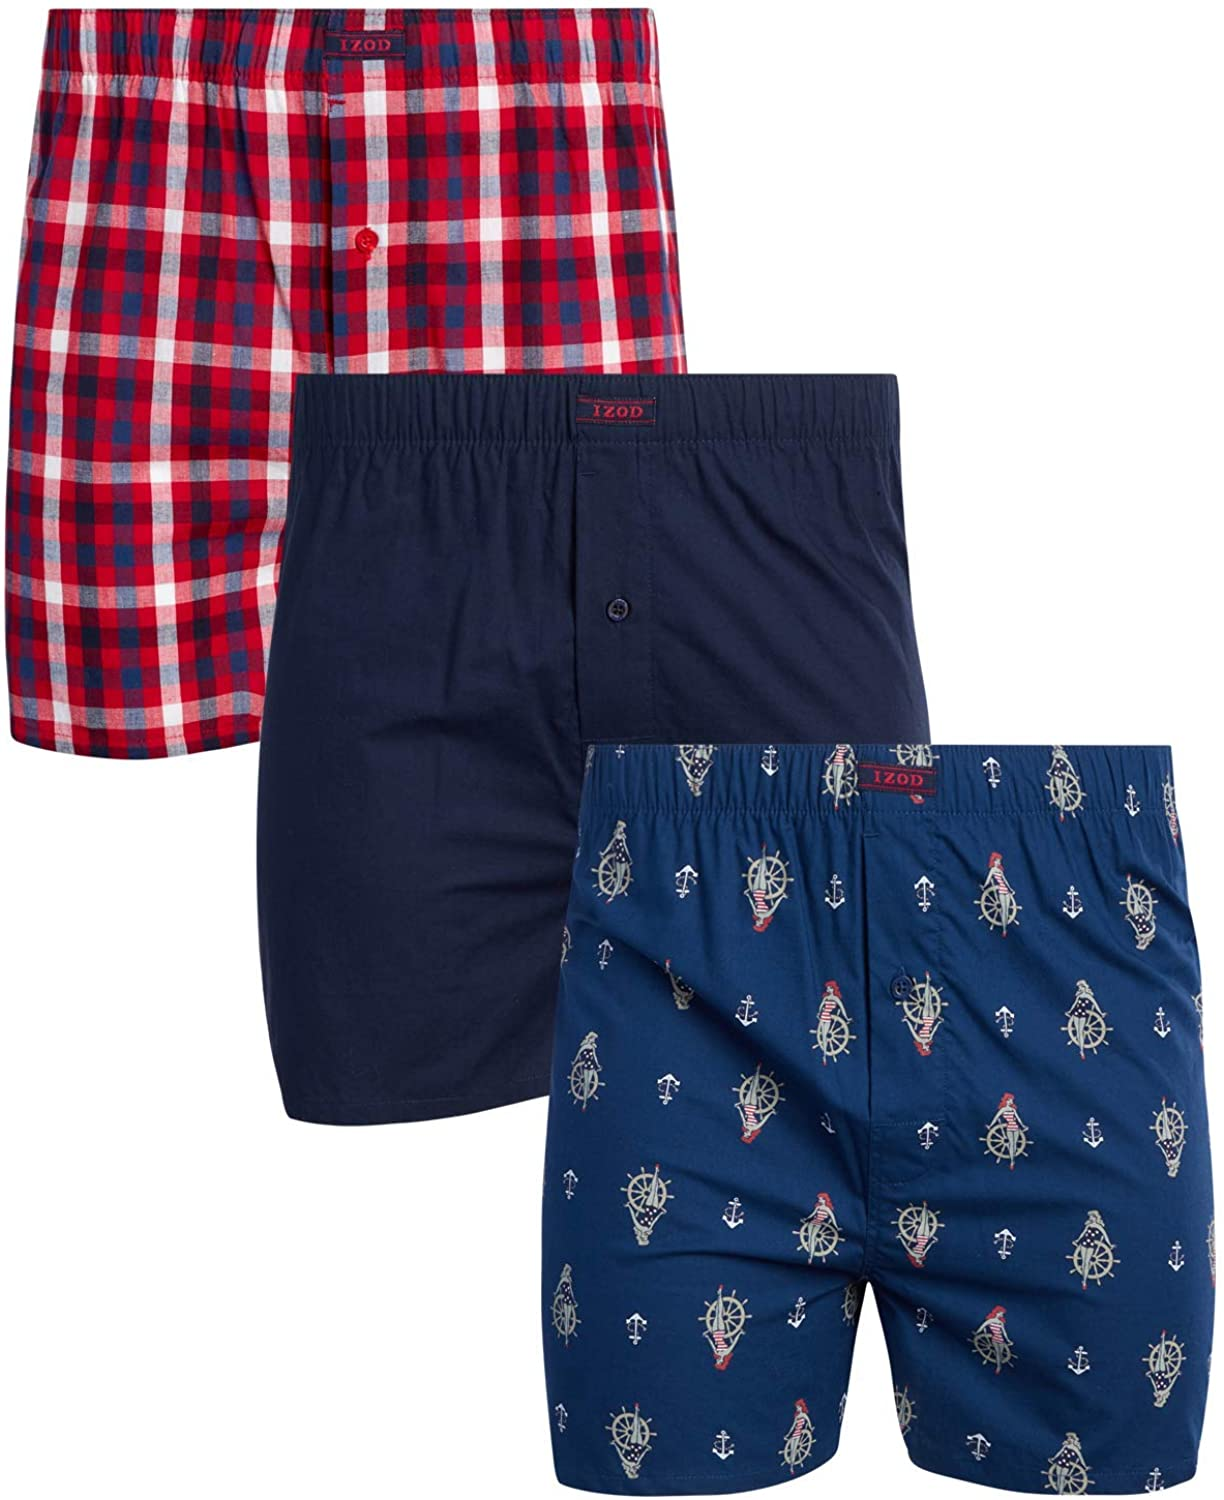 IZOD Men's Underwear – Cotton Functi latest Woven OFFer with Boxers